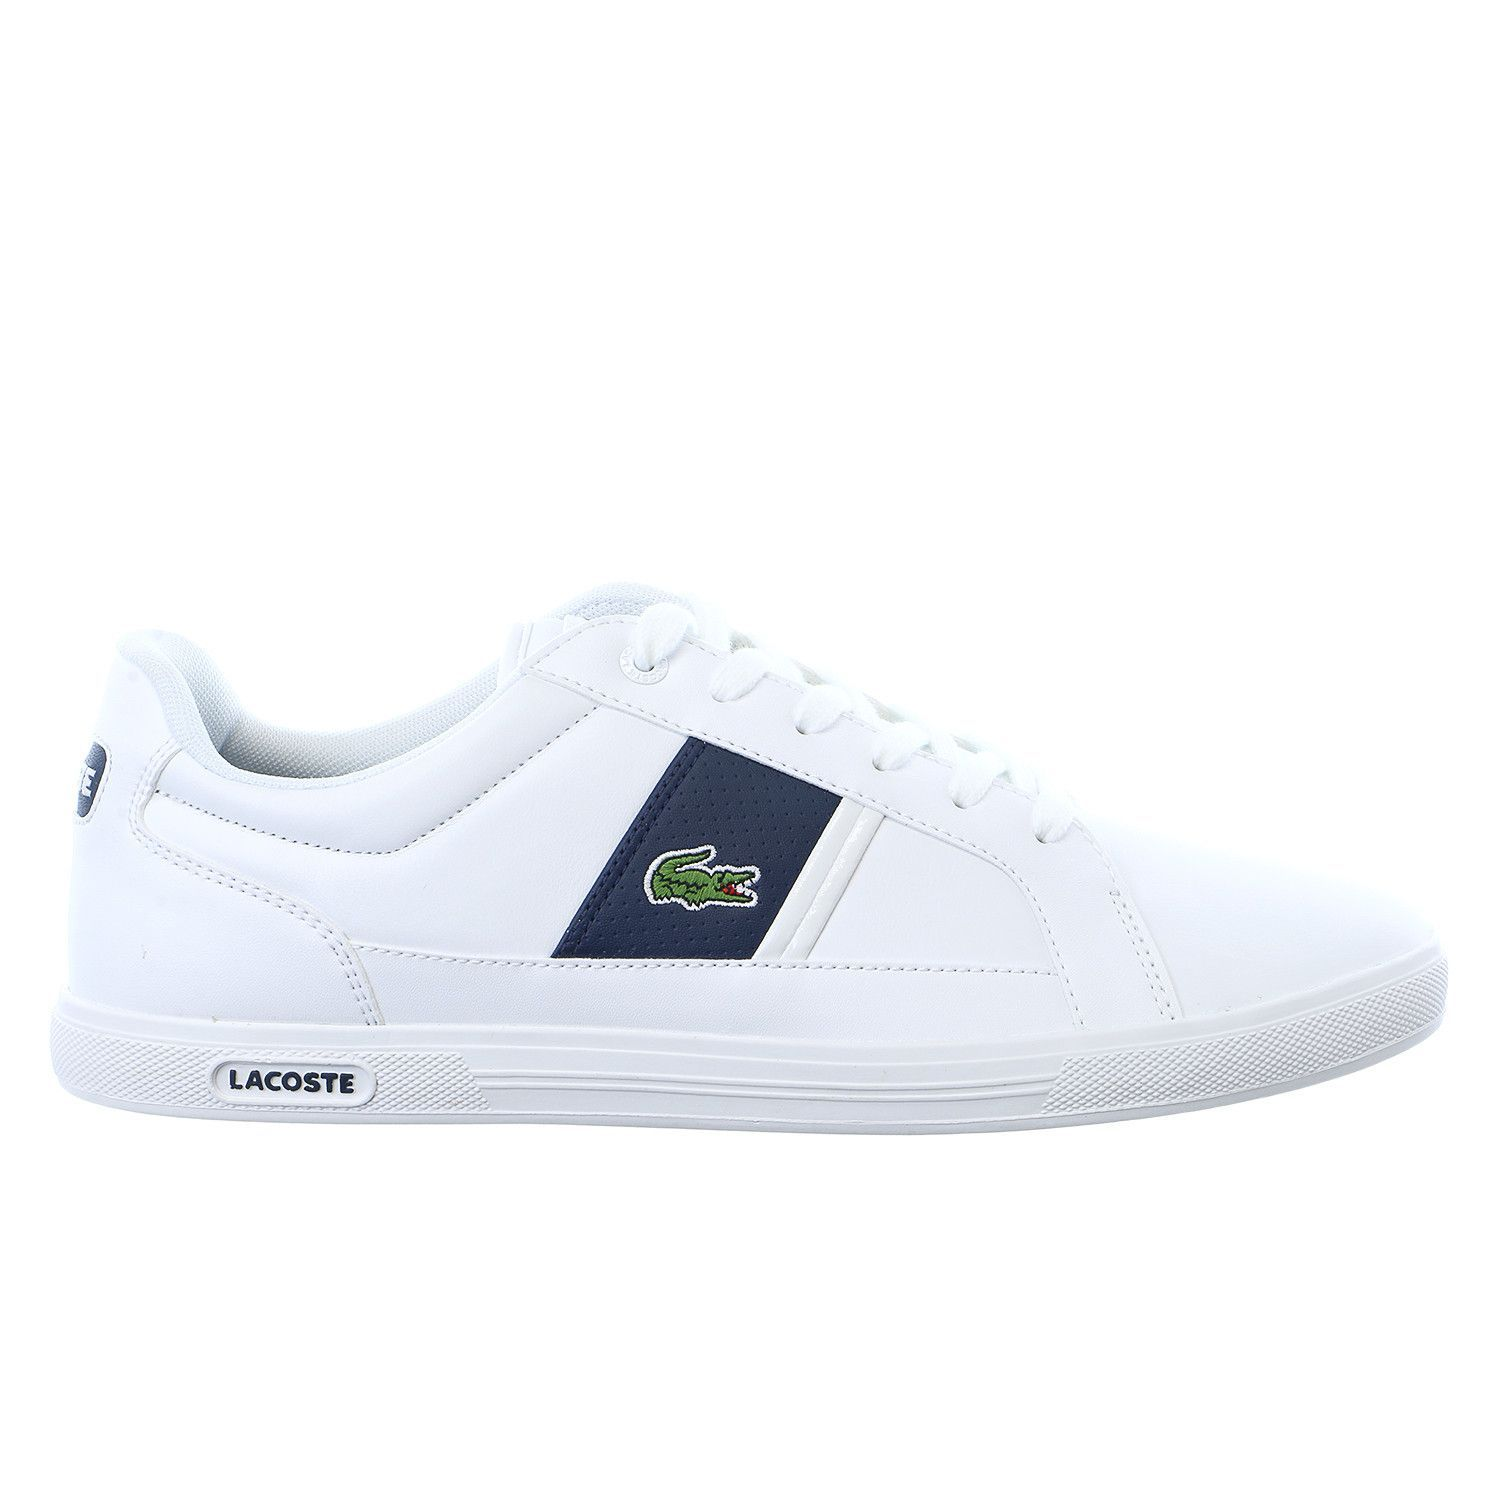 Lacoste Europa LCR3 Fashion Sneaker Shoe - Mens